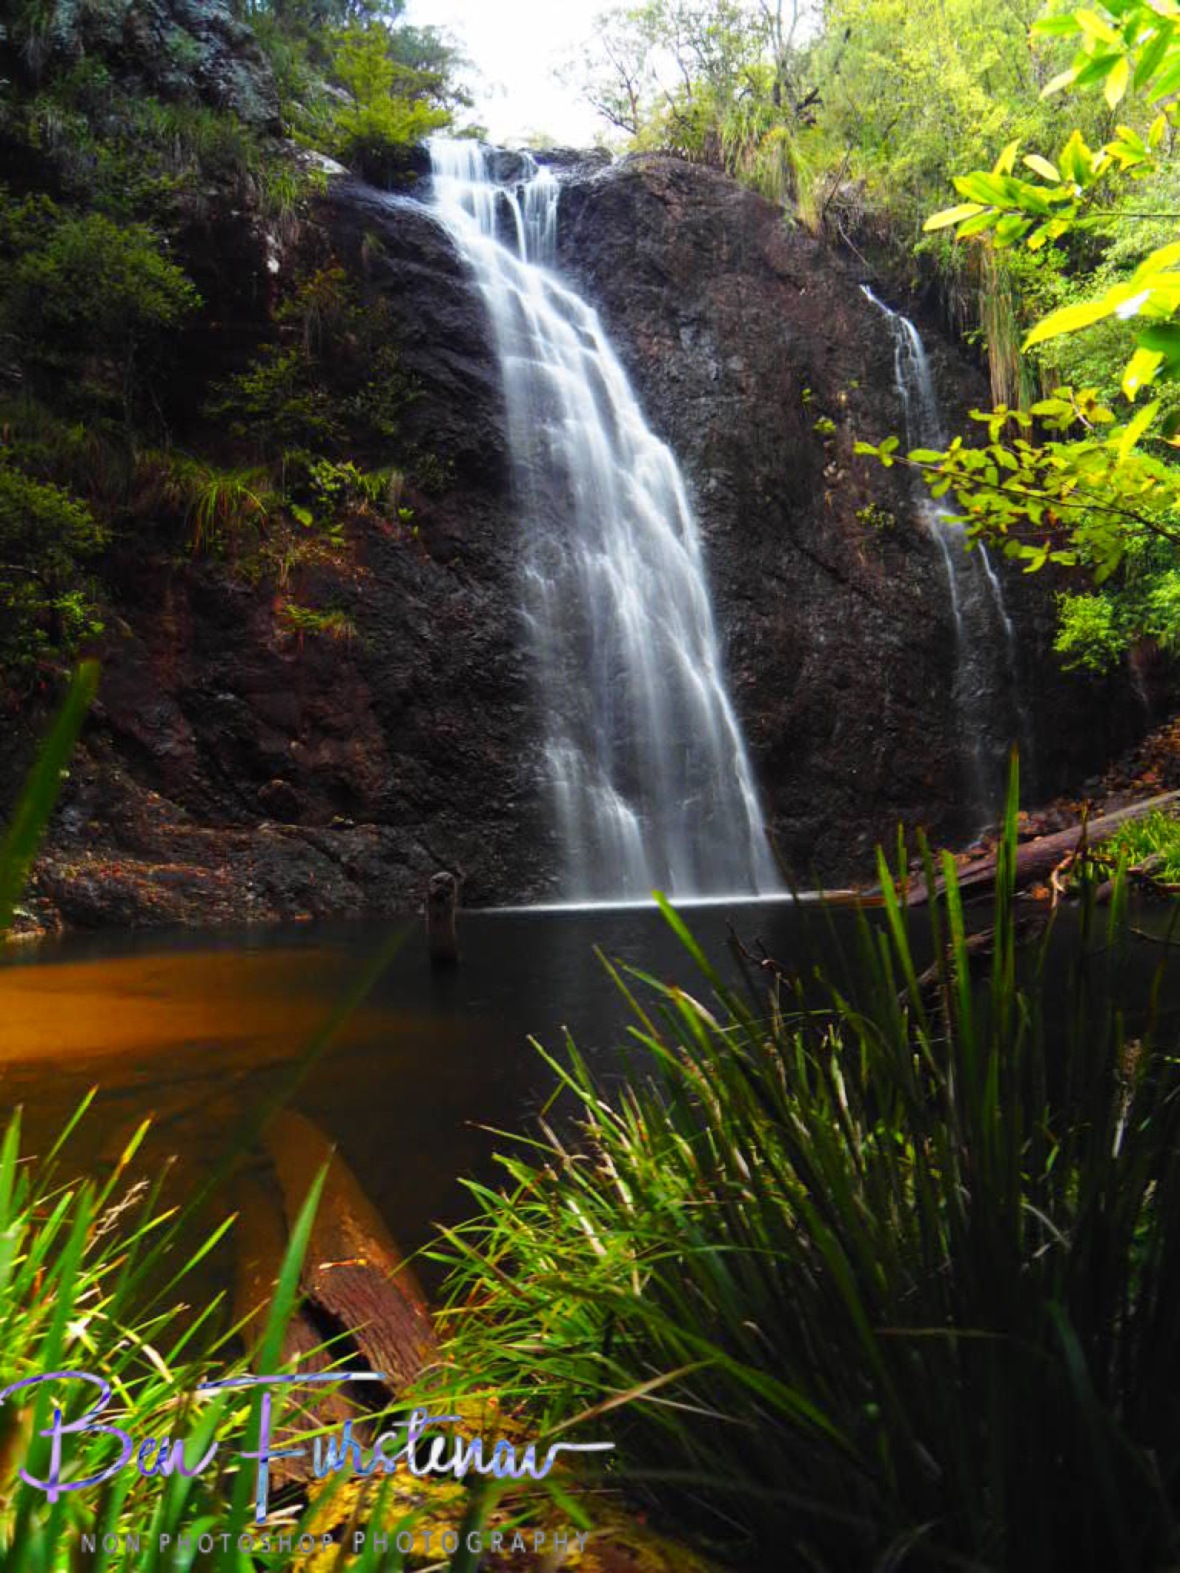 Boundry Falls creating a nice swimming pool, Washpool National Park, NSW, Australia